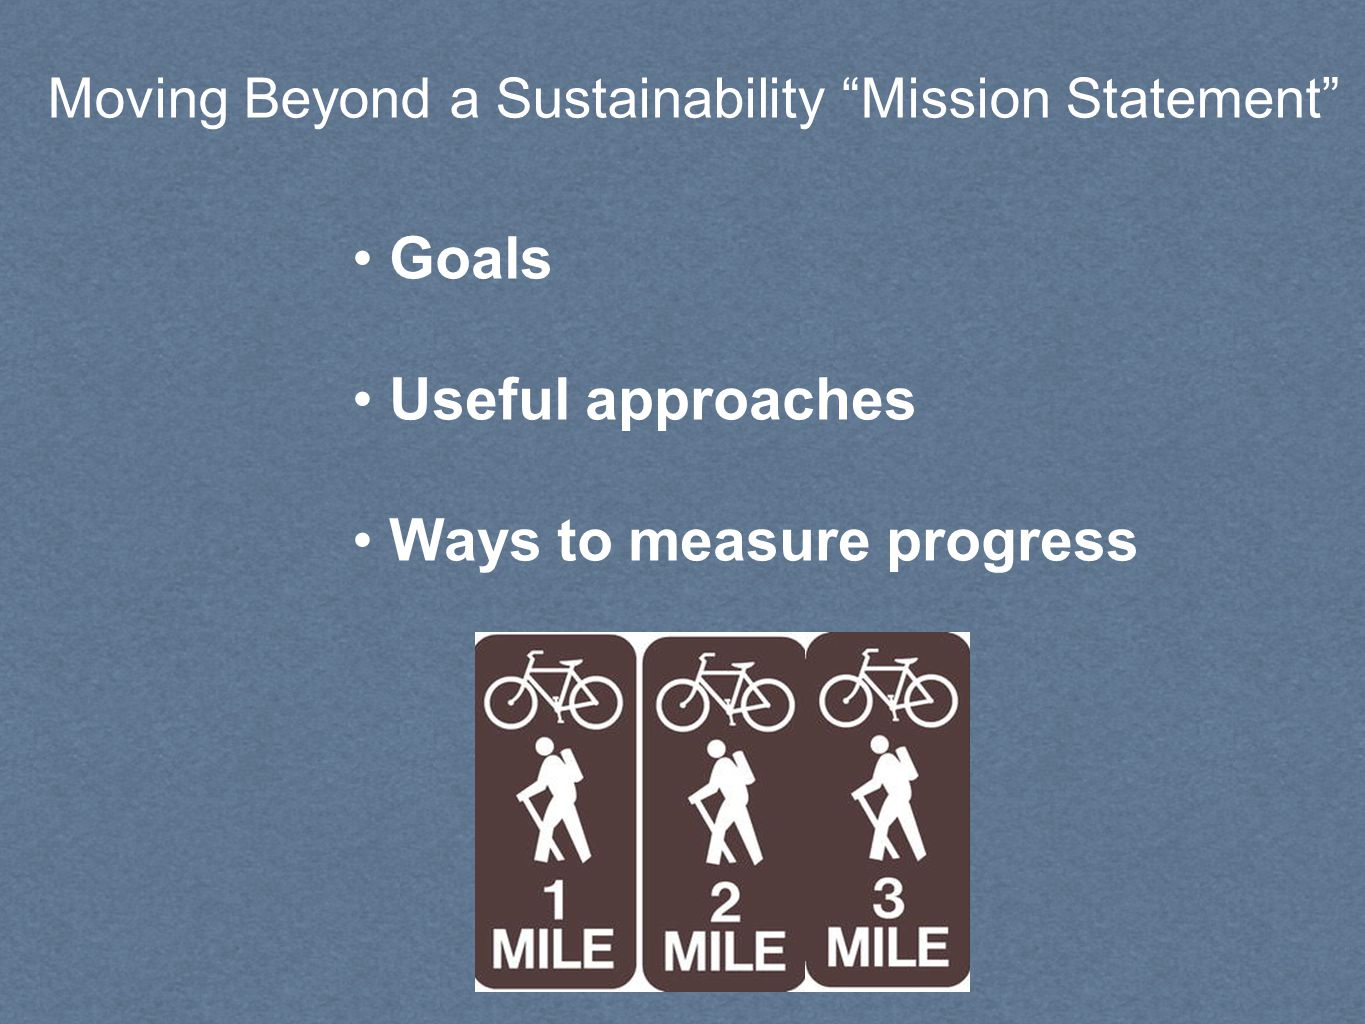 Moving Beyond a Sustainability Mission Statement Goals Useful approaches Ways to measure progress